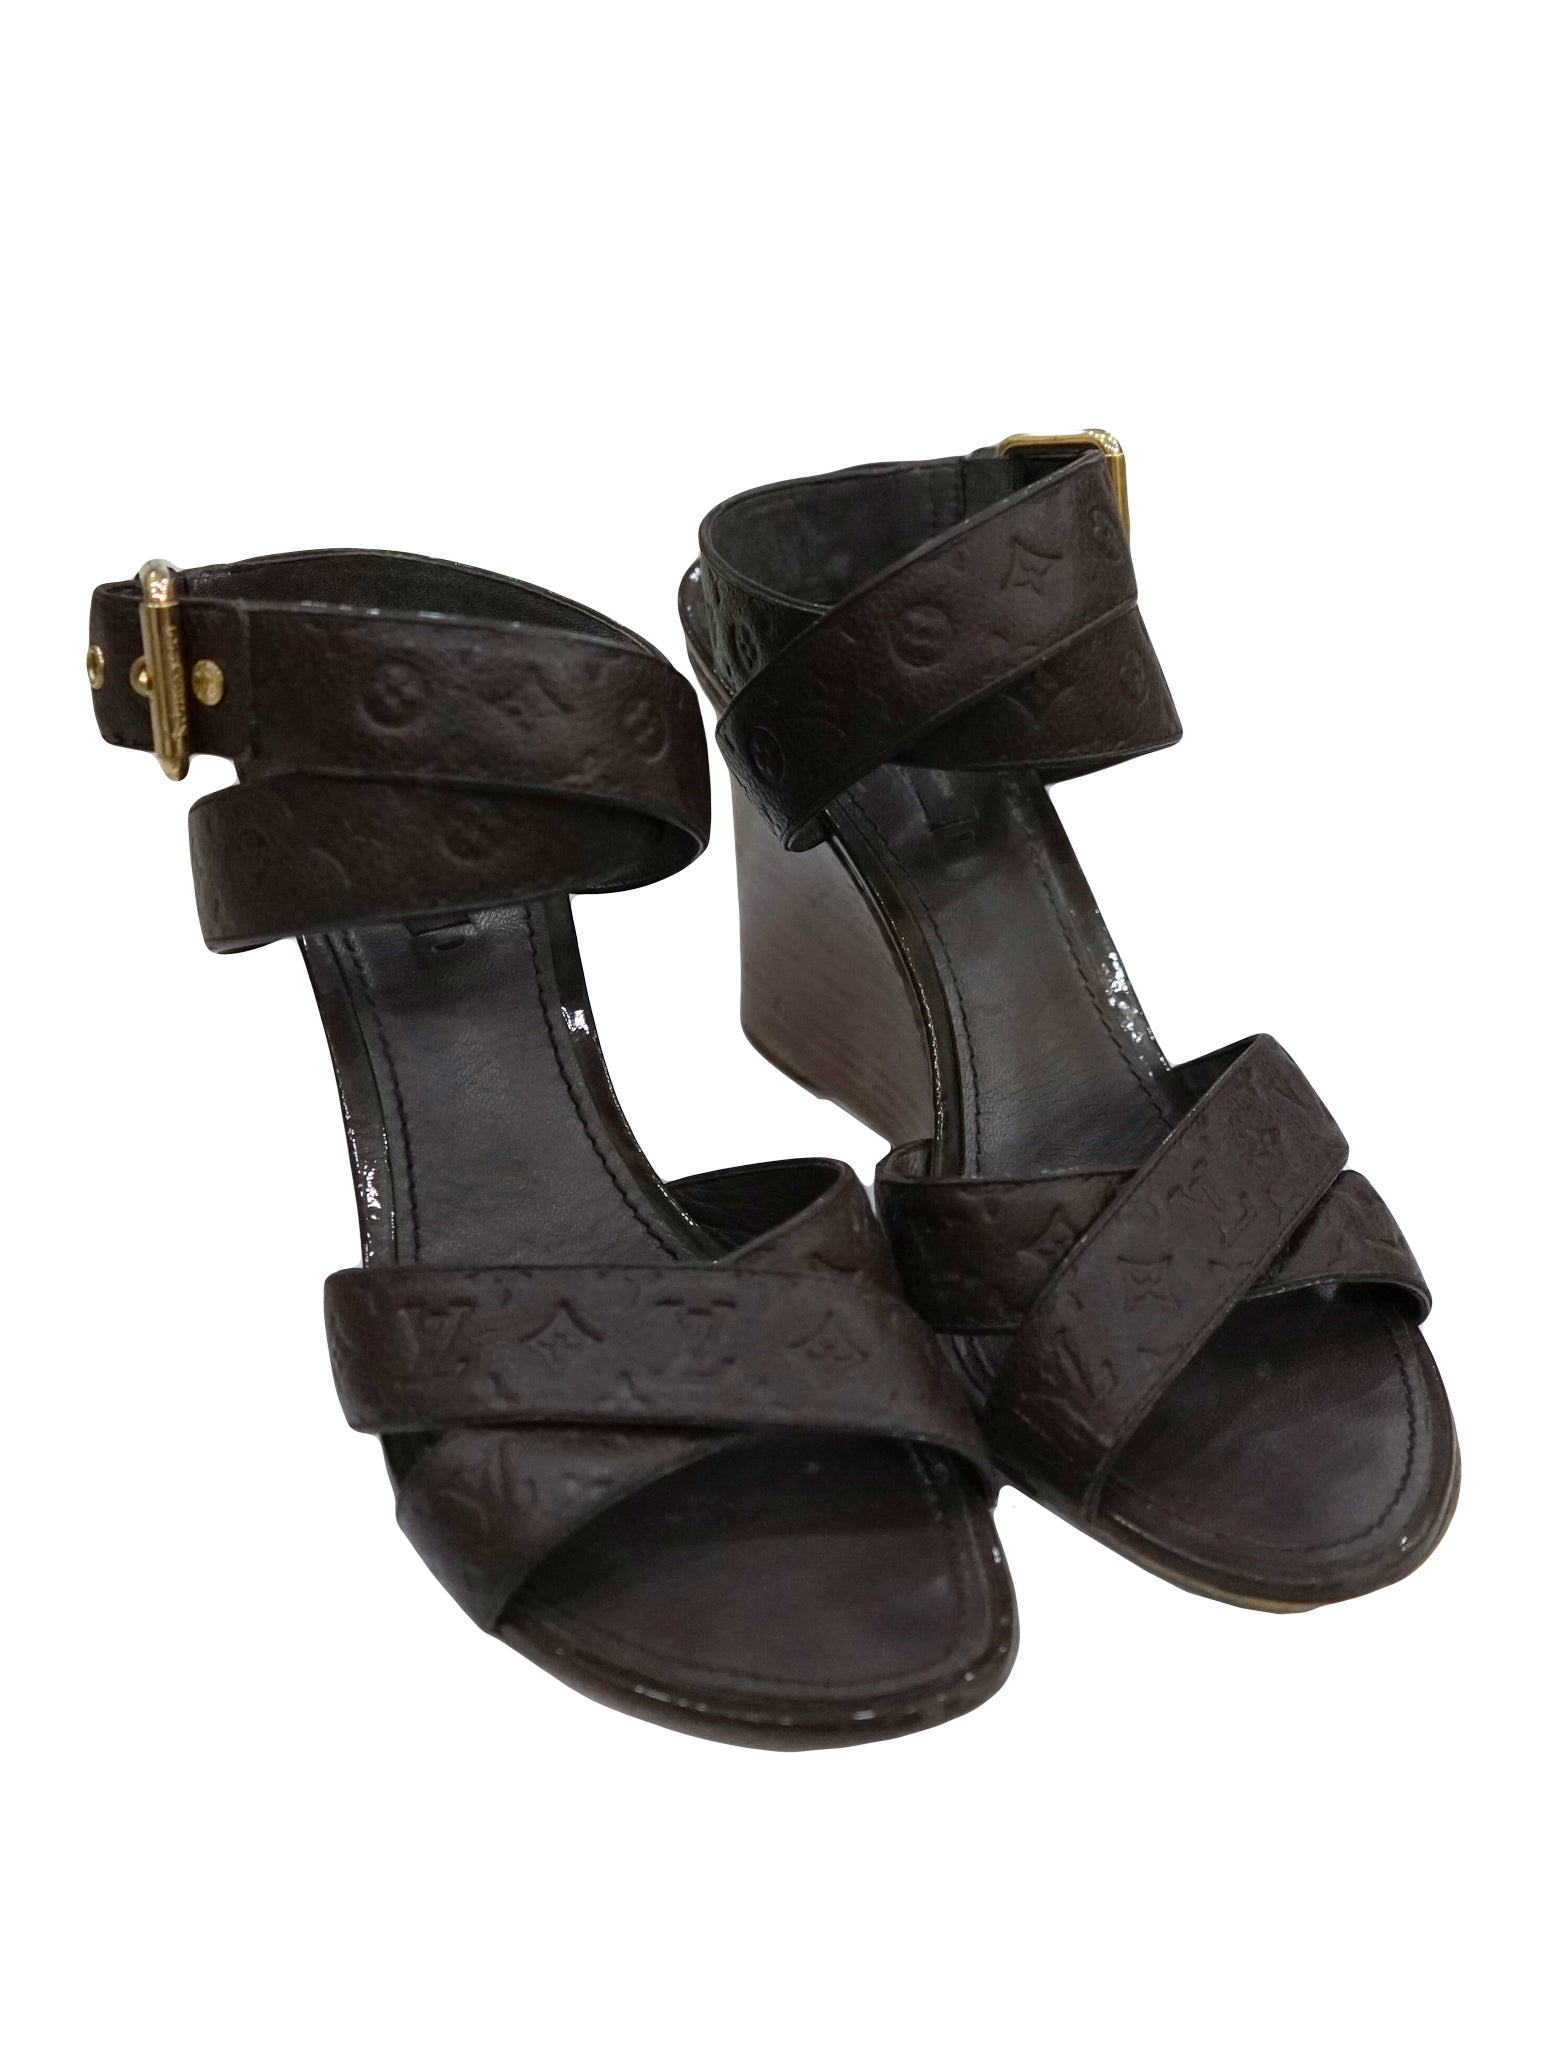 BROWN CROSS STRAP PEEP TOE WEDGE